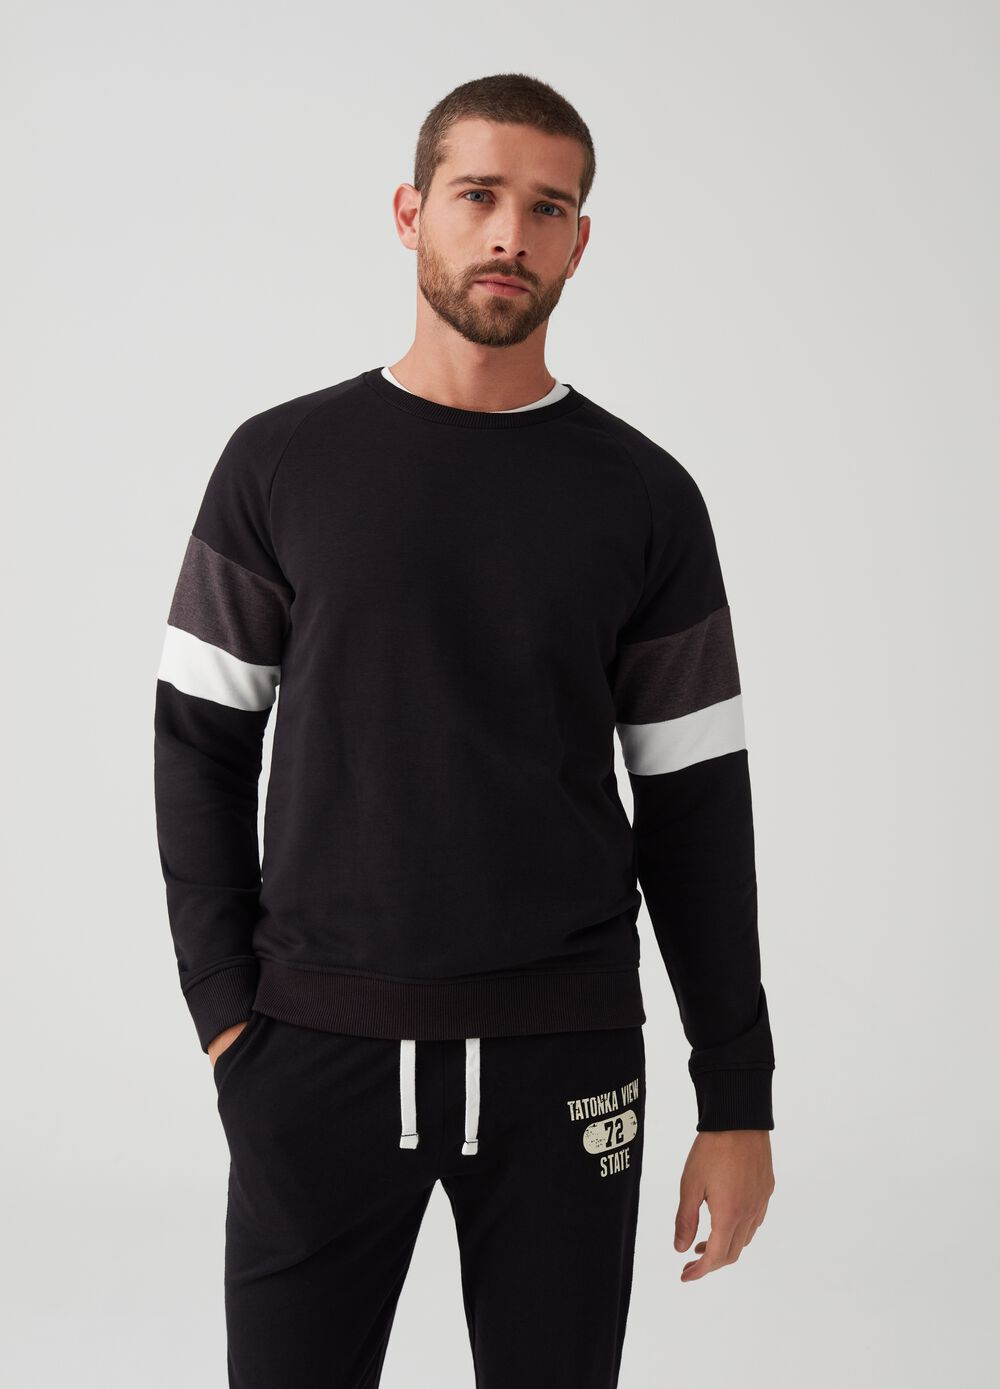 Sweatshirt with round neck and raglan sleeves